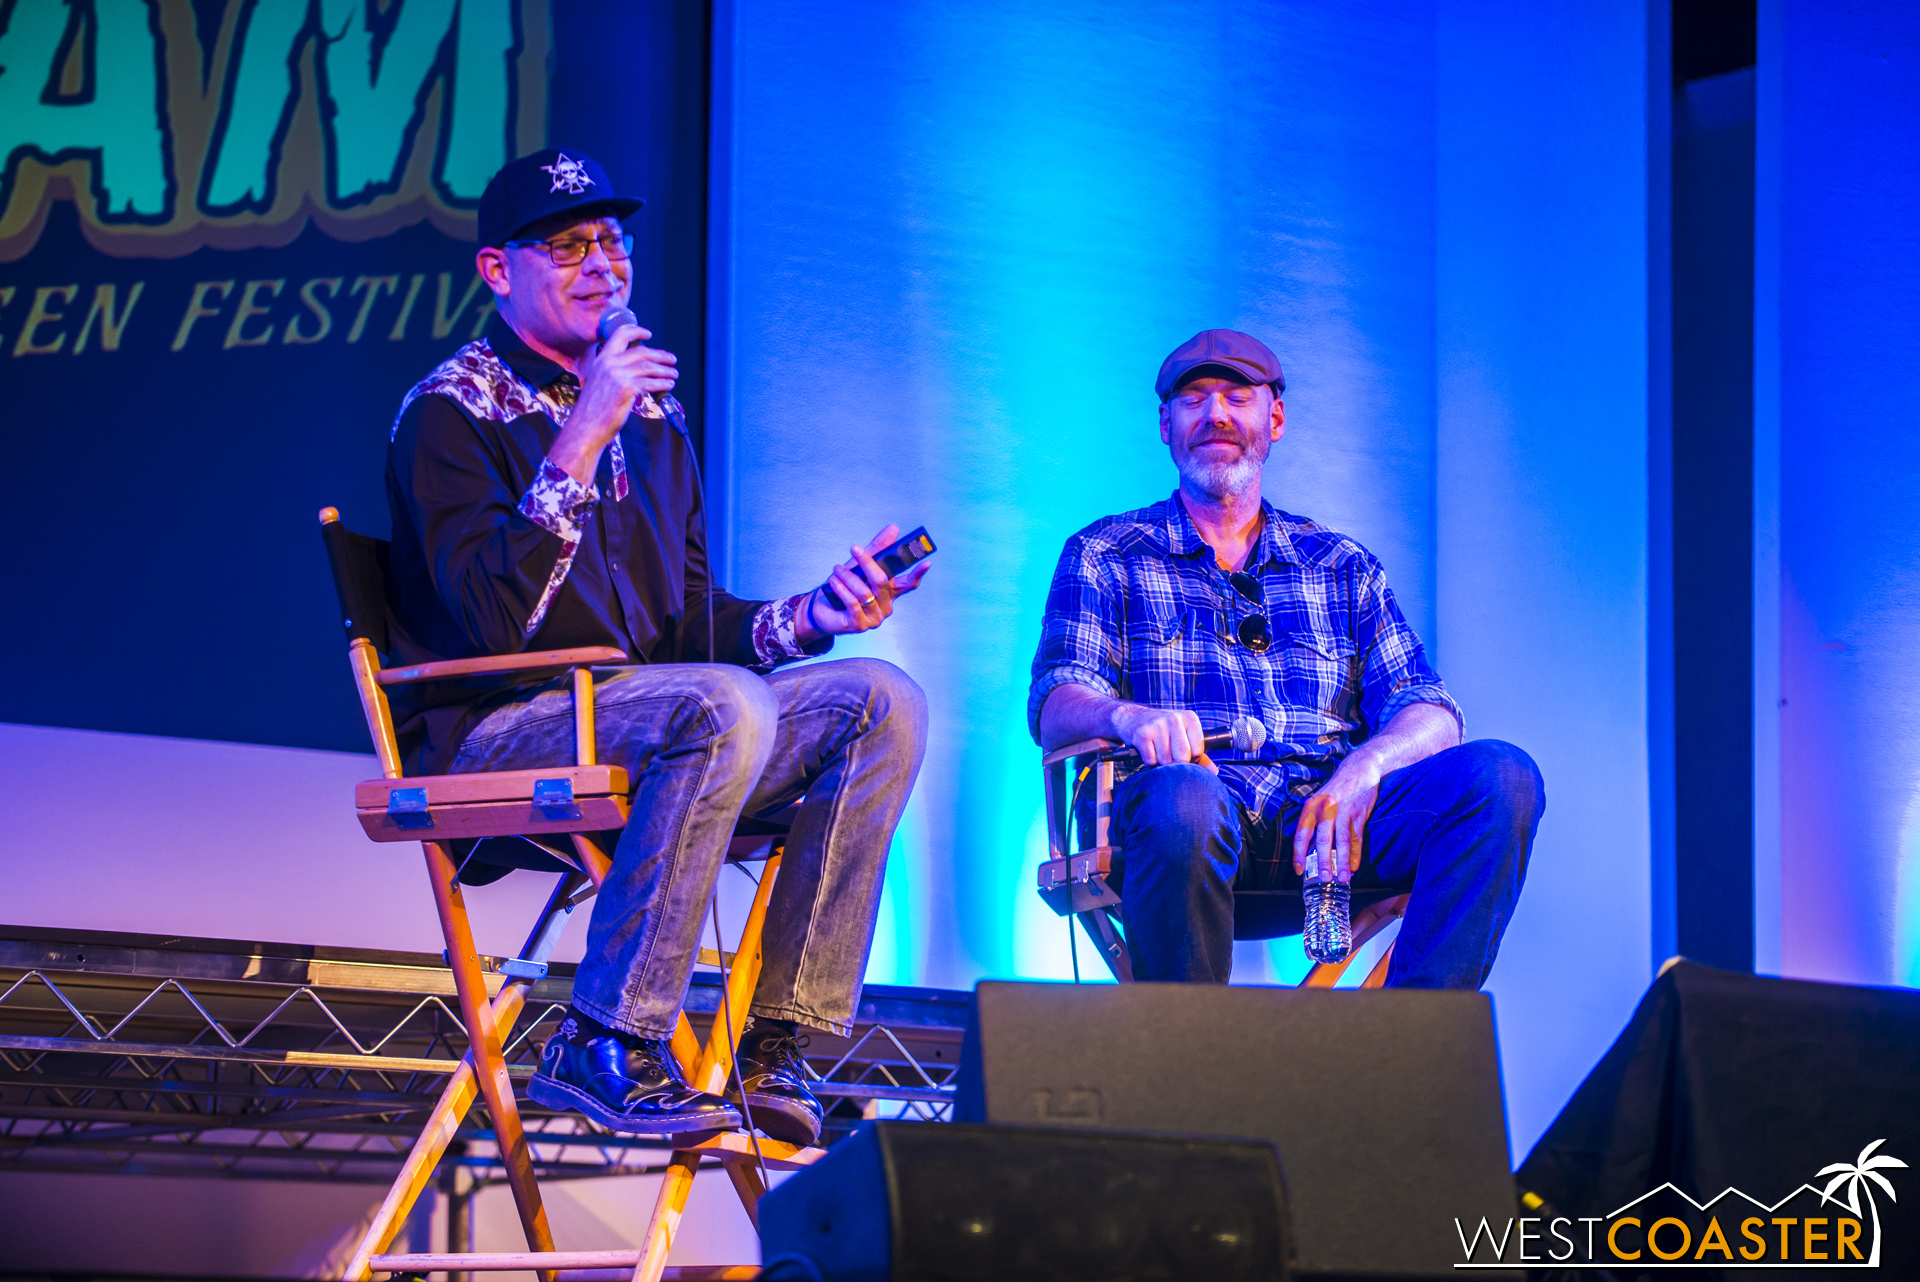 """Murdy and Williams began their talk with a history of Horror Nights at Universal Studios Hollywood in its current iteration. After bringing it back in 2006, they were able to implement their master plan in 2007 of """"bringing horror movies to life."""" In other words, transporting guests into iconic scenes and moments from their favorite horror films."""